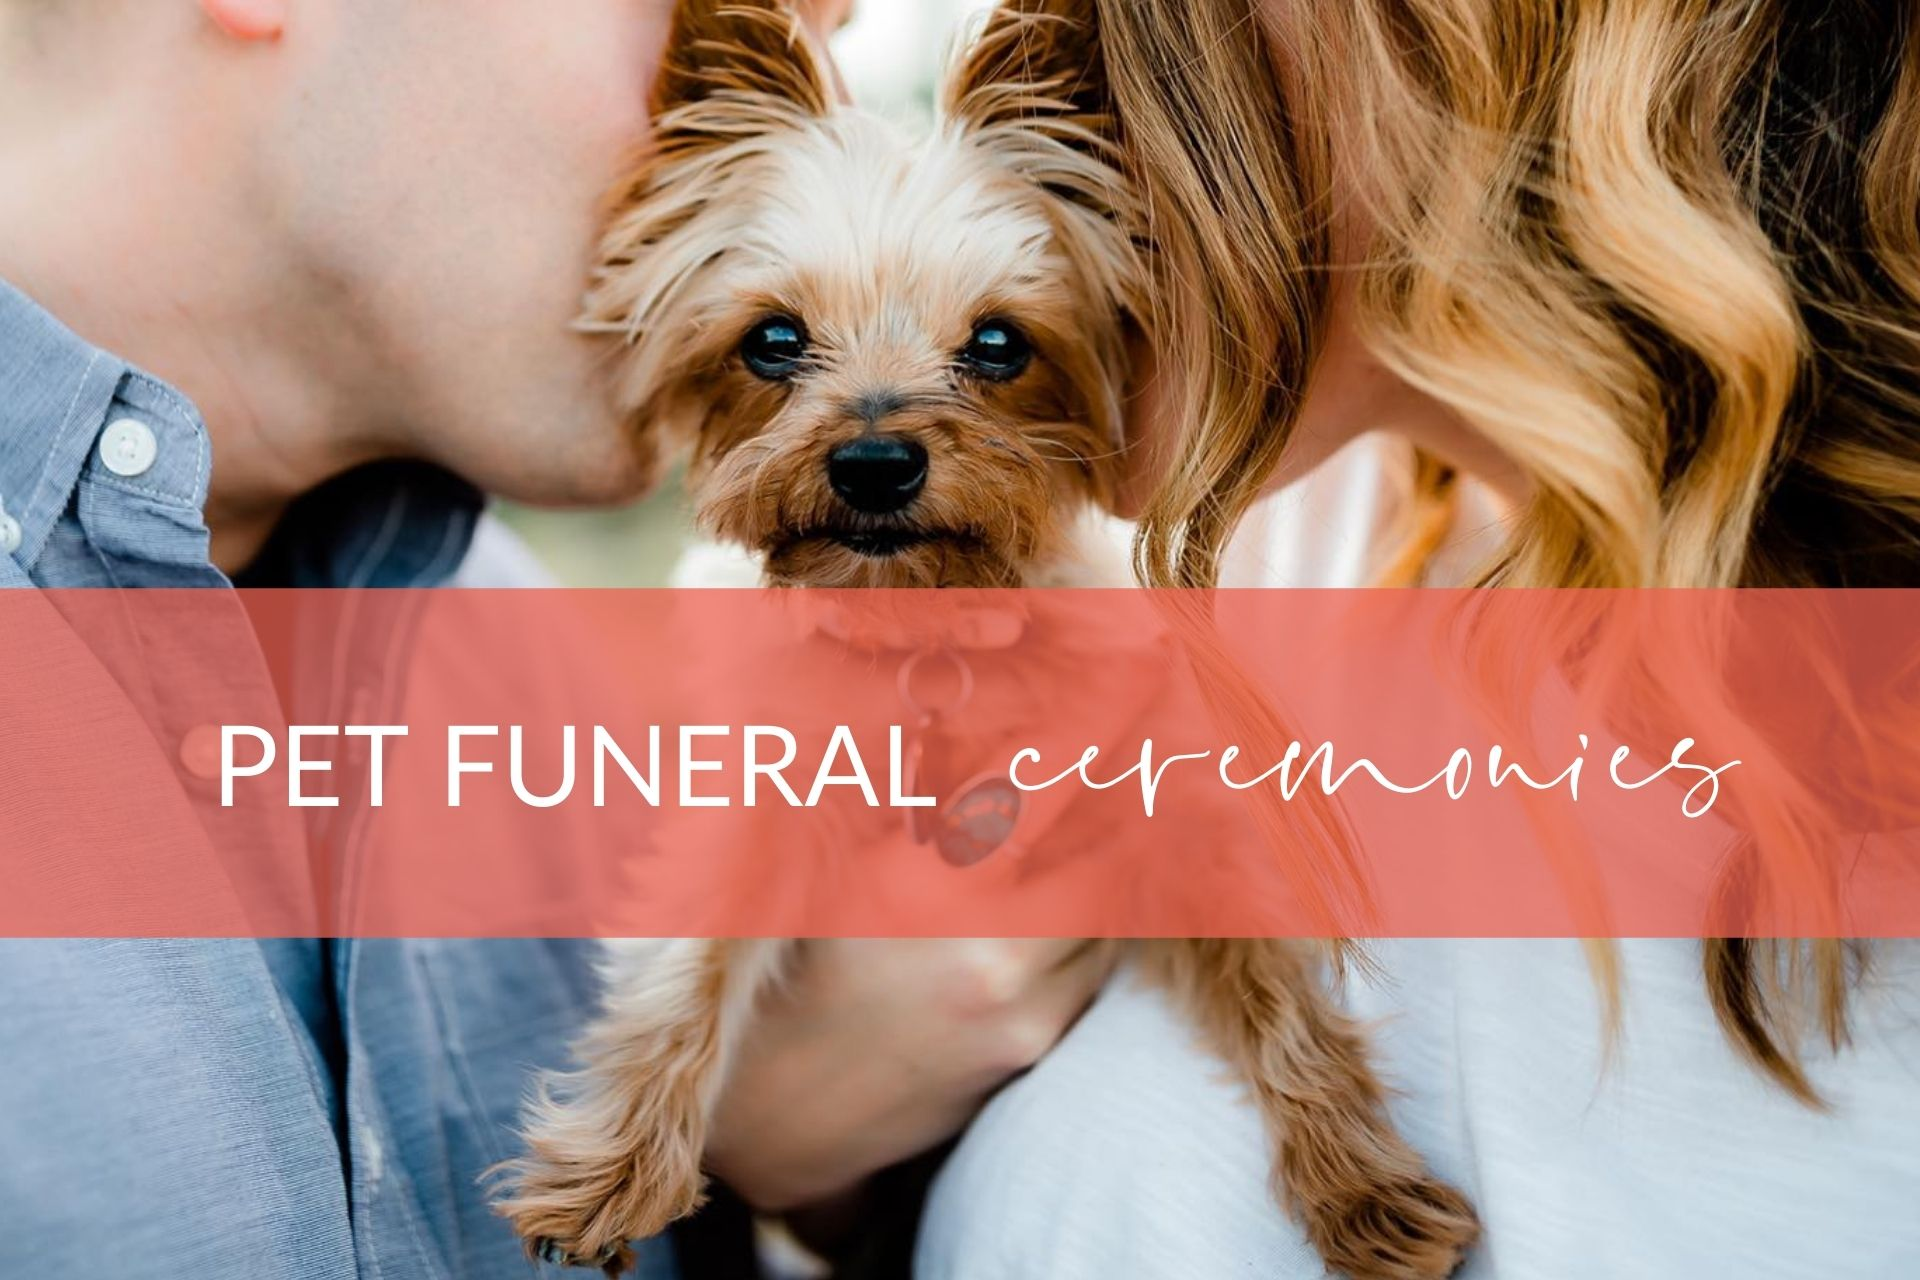 Pet Funeral Ceremonies